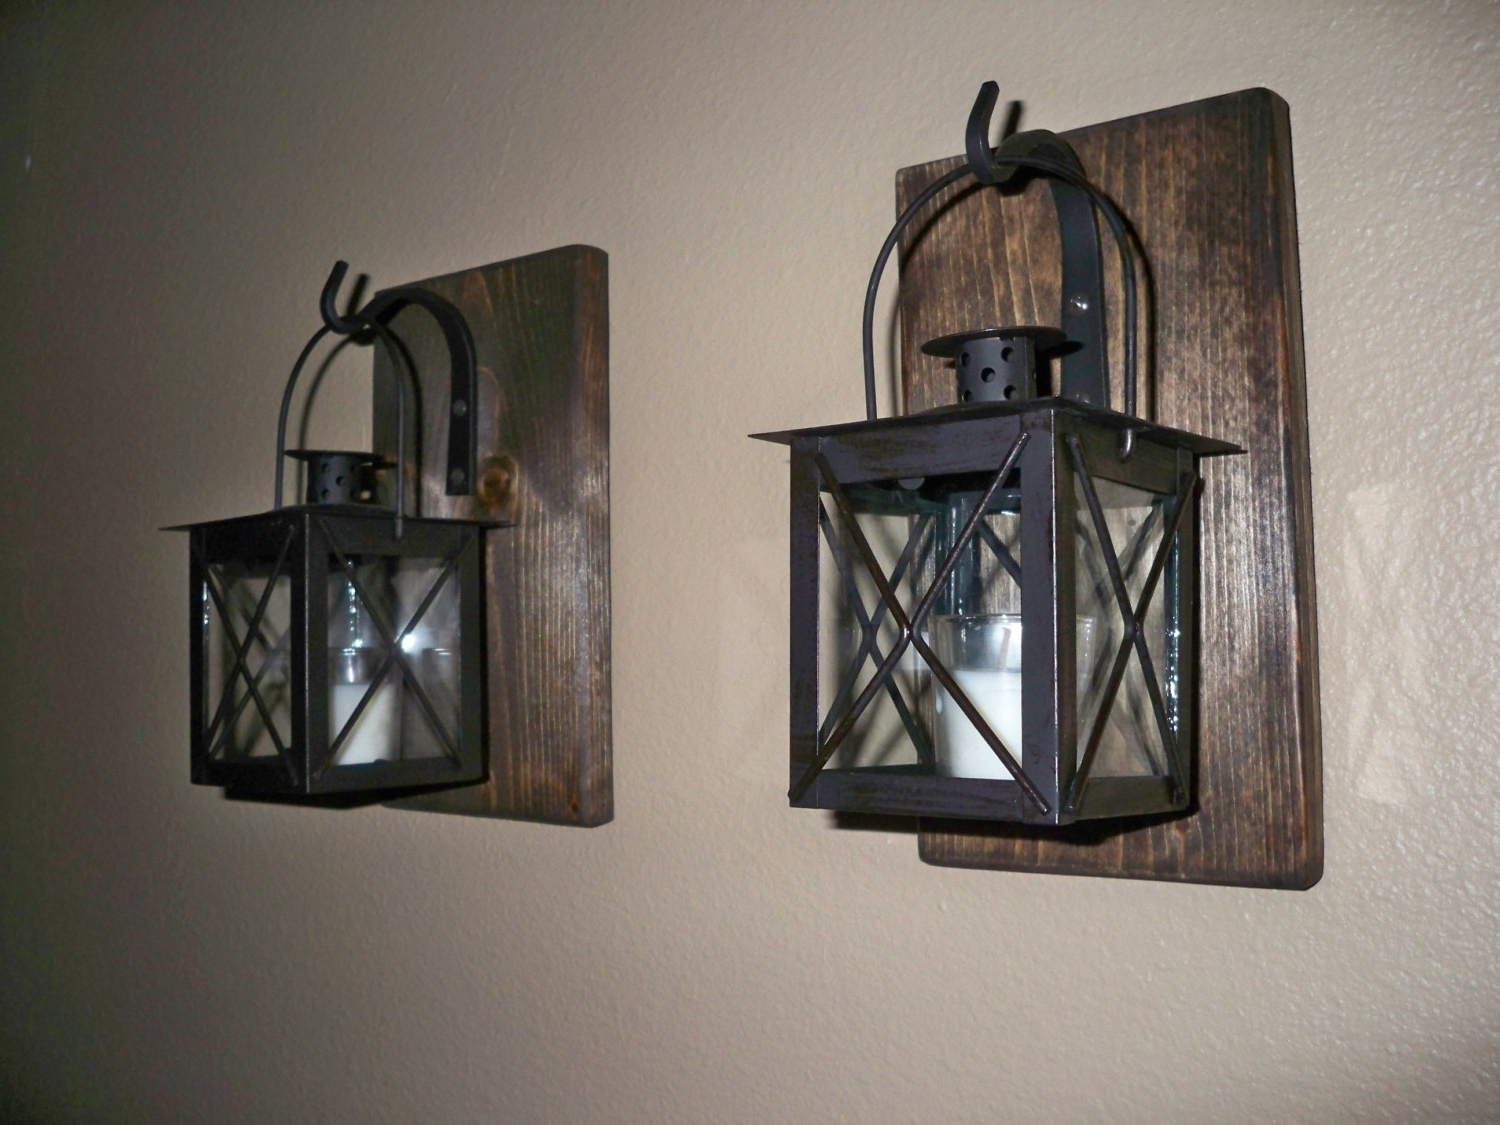 Decorative Outdoor Wall Art Large Wrought Iron Key Decor Sconces Regarding Most Recently Released Etsy Outdoor Lanterns (View 11 of 20)